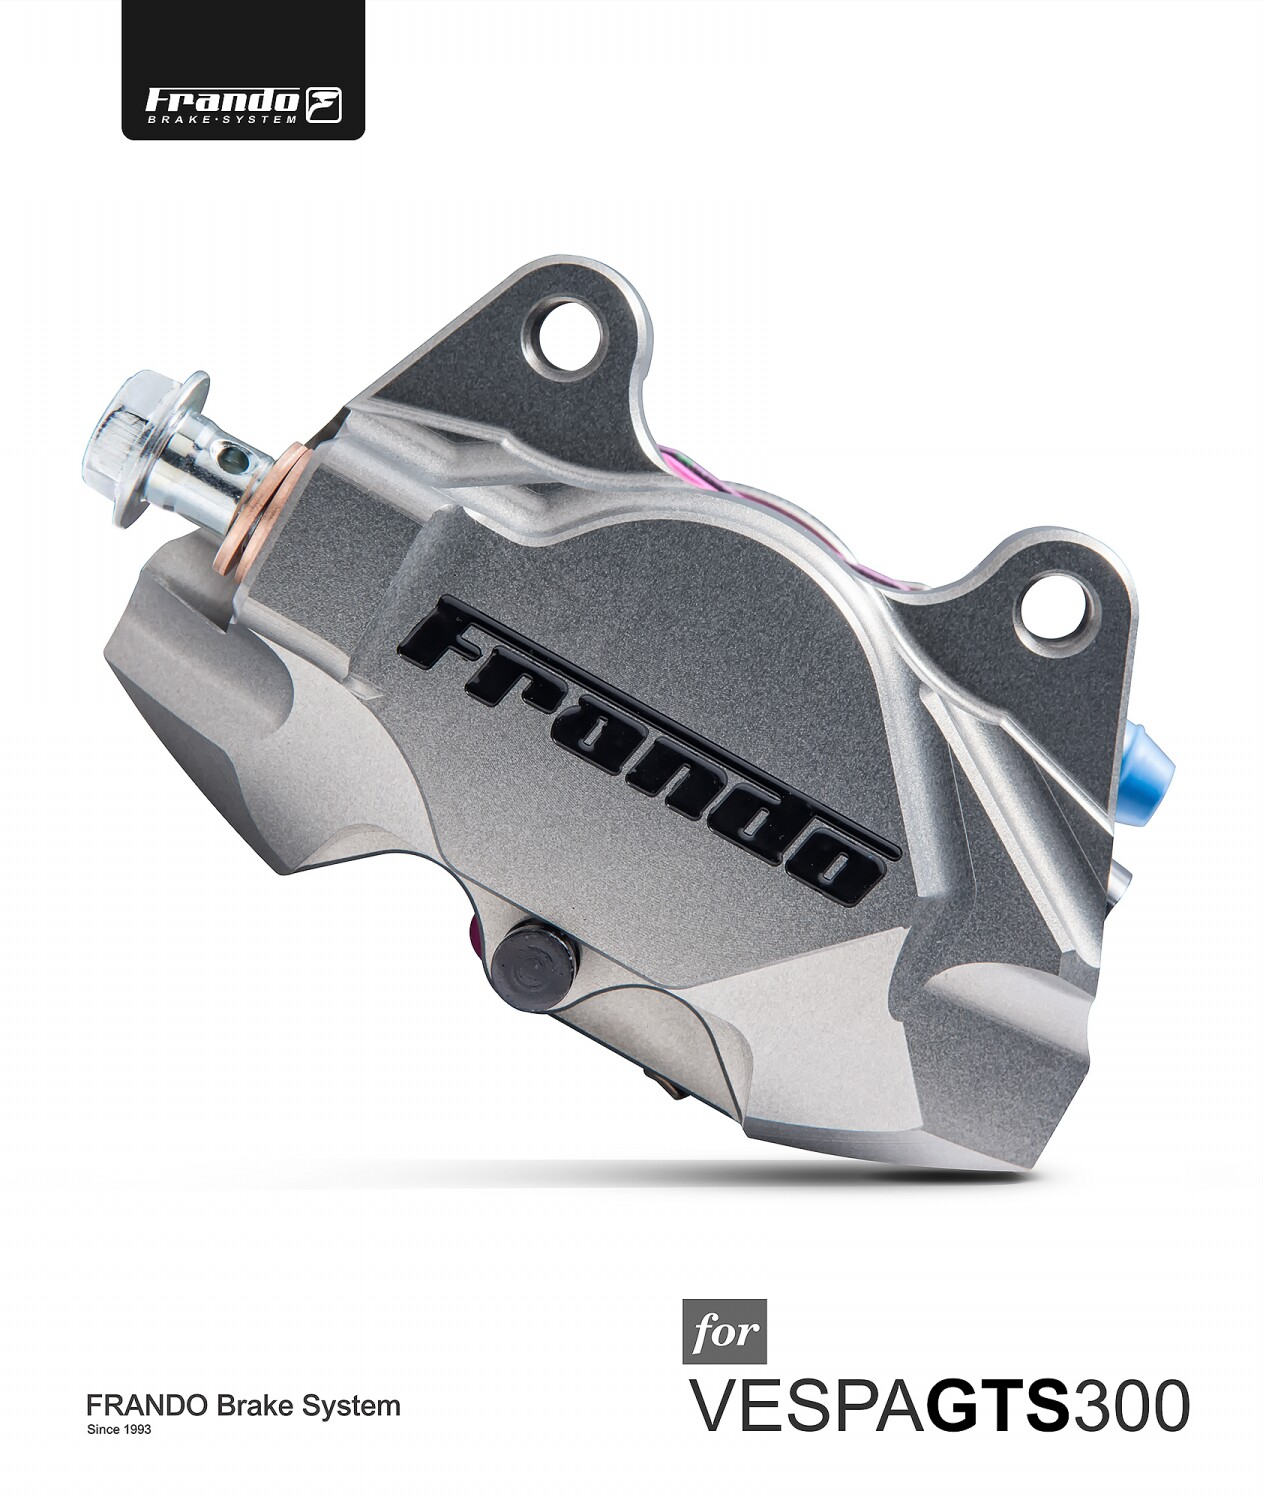 Image 5 - Frando F901 series CNC pair piston calipers Rear brake calipers for piaggio vespa  GTS 300/ LX/LXV crabs-in Brake Shoe Sets from Automobiles & Motorcycles